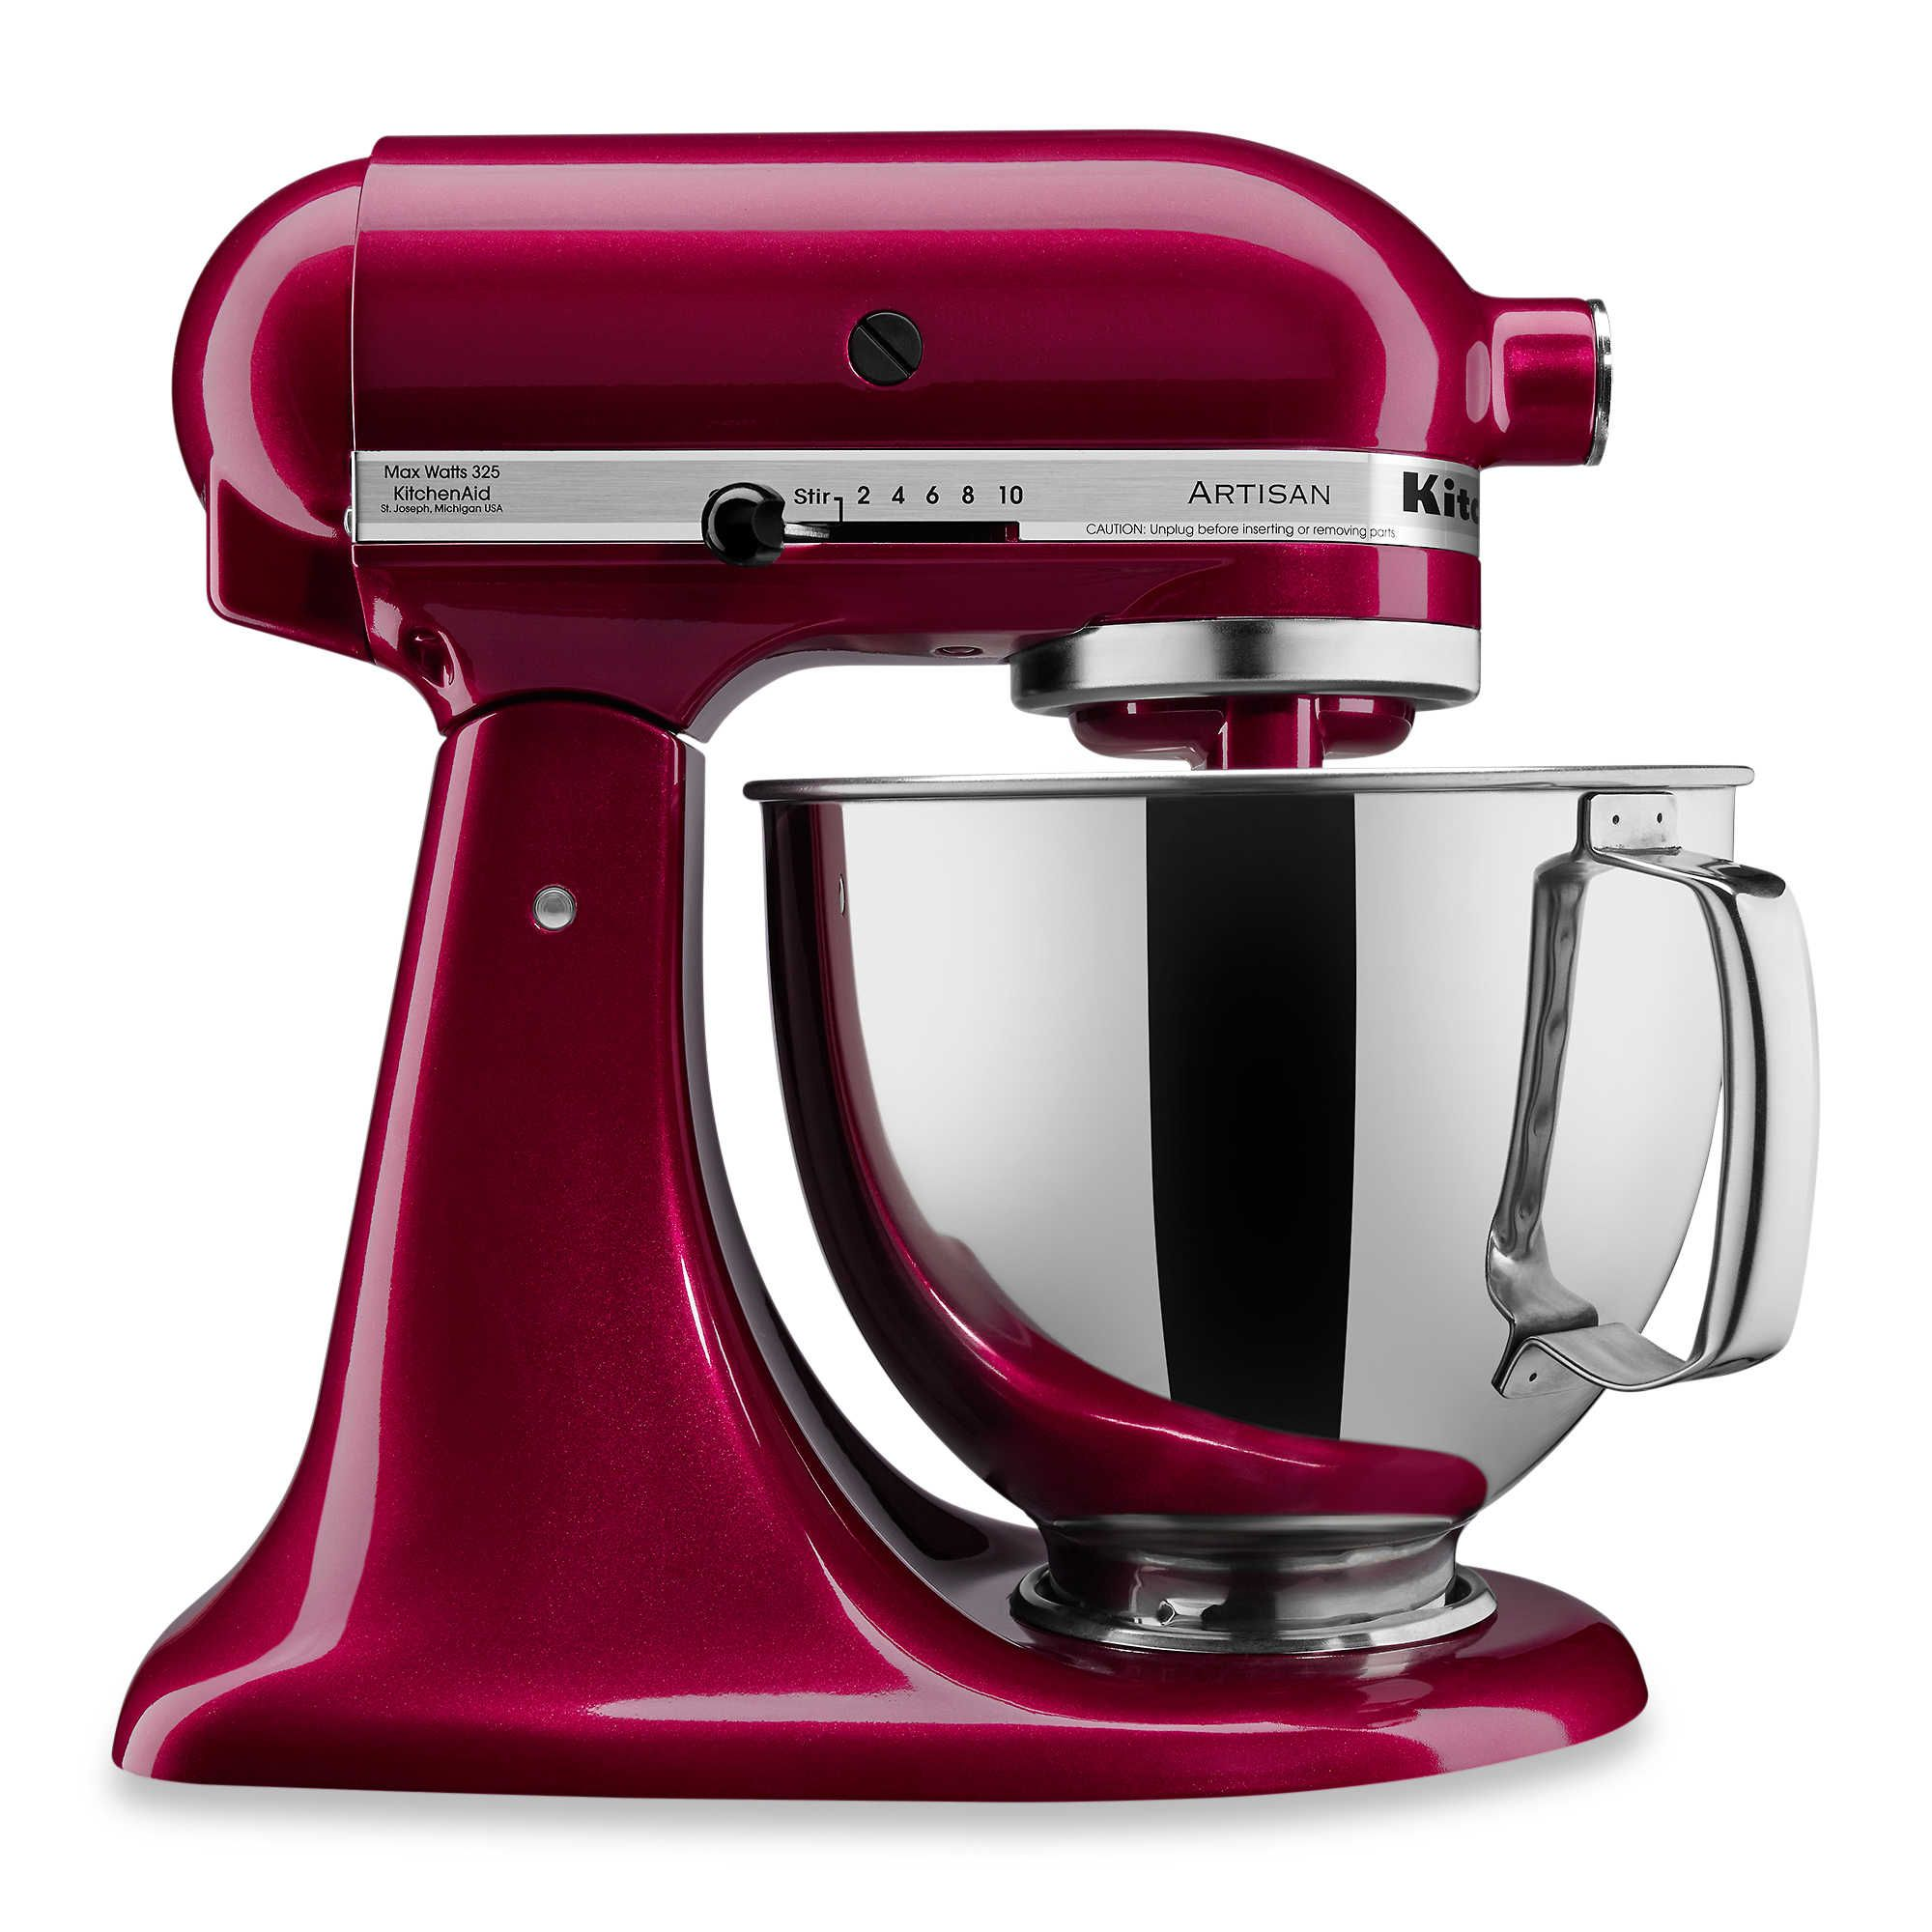 Kitchenaid Artisan 5 Qt Stand Mixer Kitchenaid Artisan Kitchen Aid Kitchen Aid Mixer